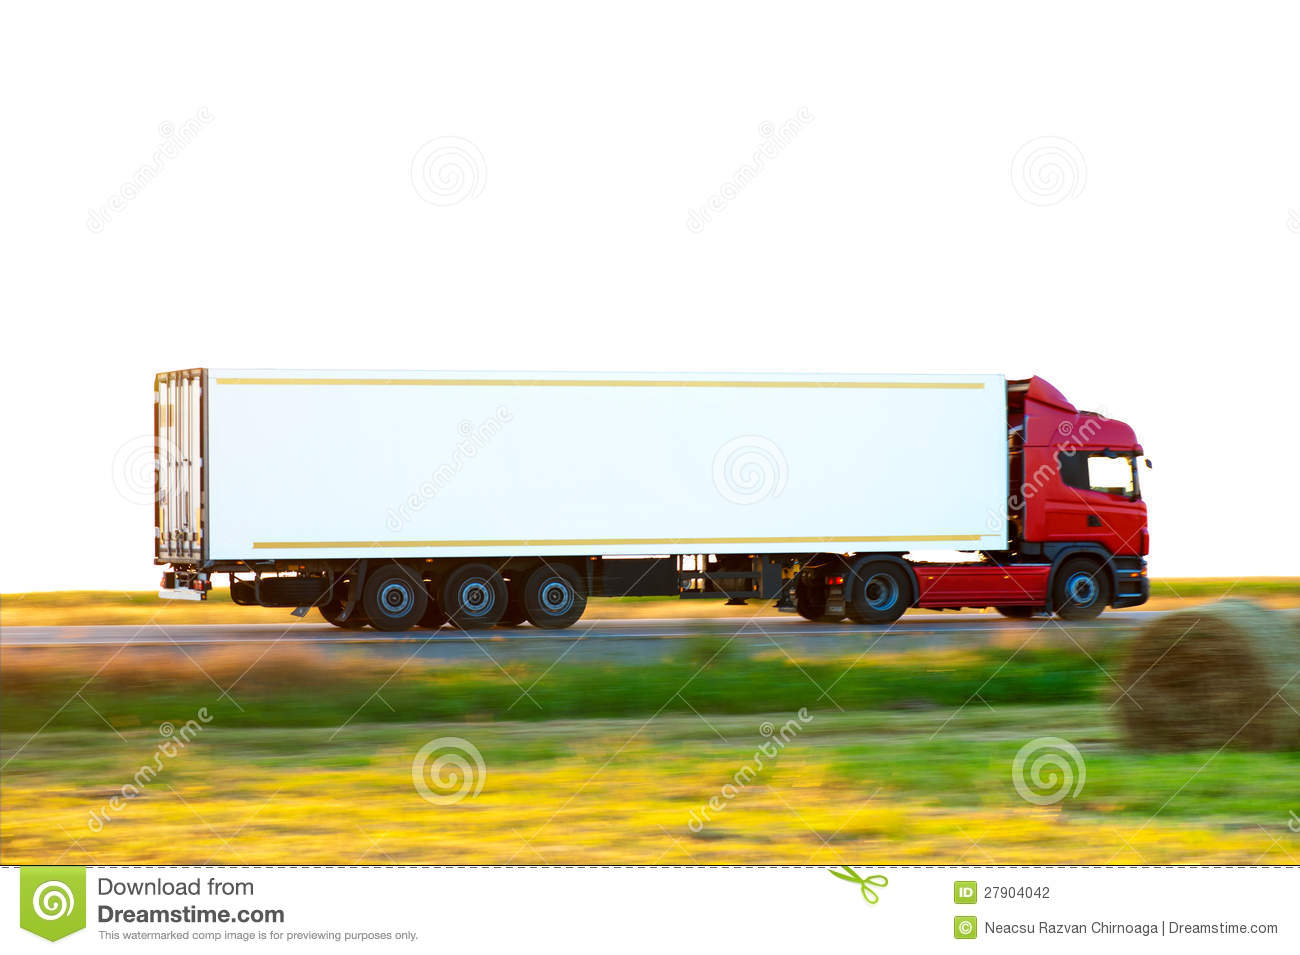 Camion rosso